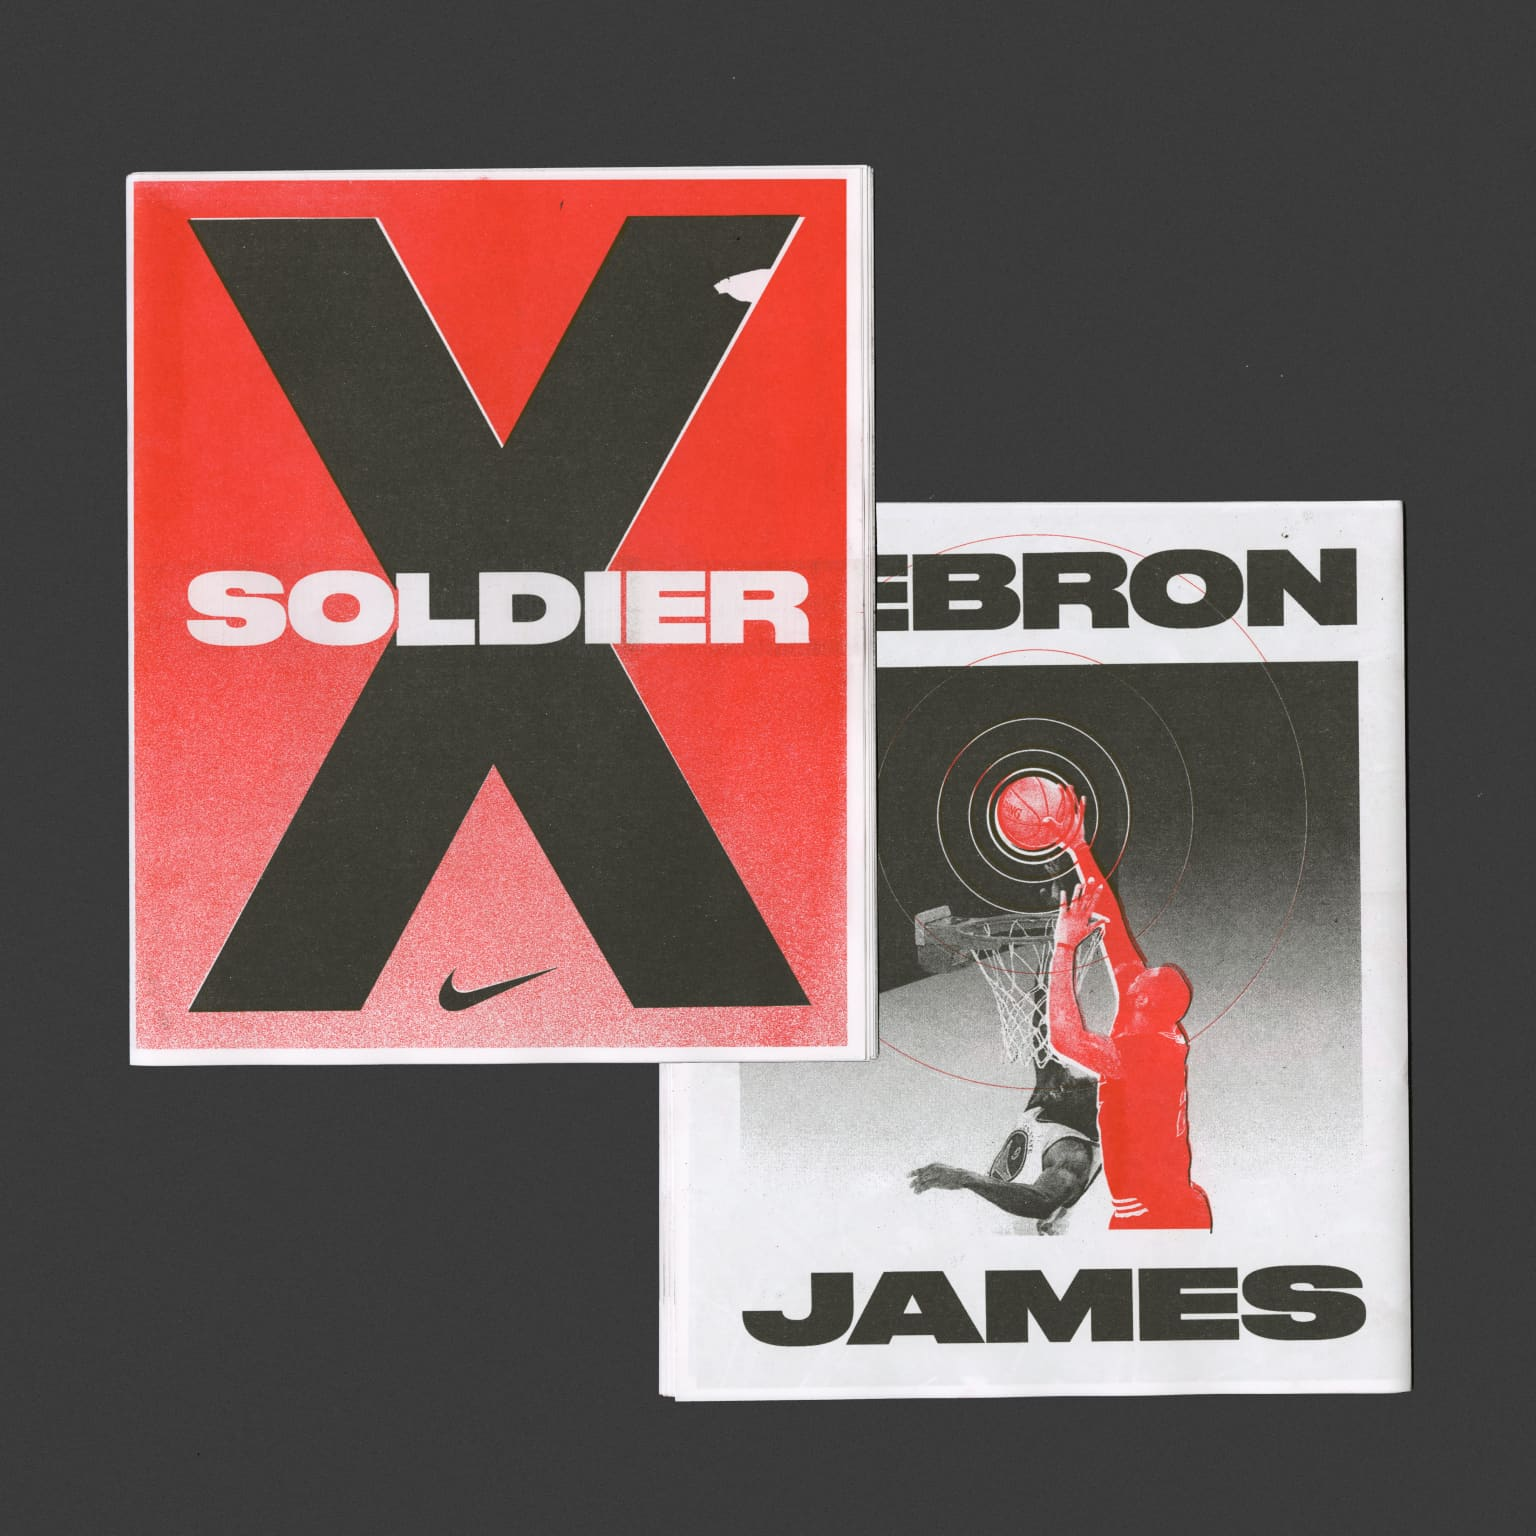 NIKE SOLDIER X LAUNCH ZINE